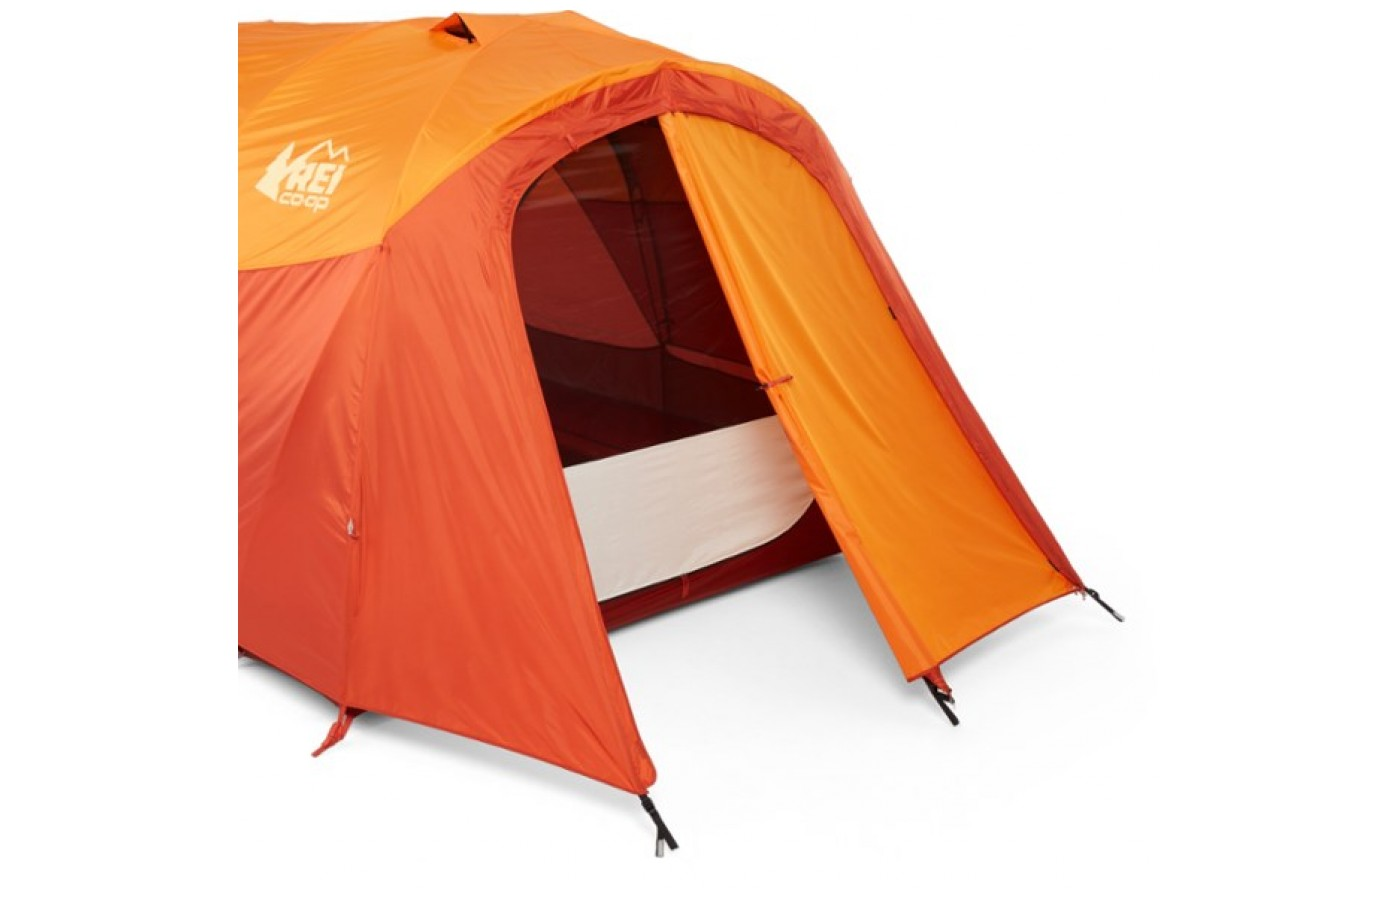 There is a spectacular large vestibule on one side of the fly to keep users dry while taking off jackets and shoes before entering the tent.